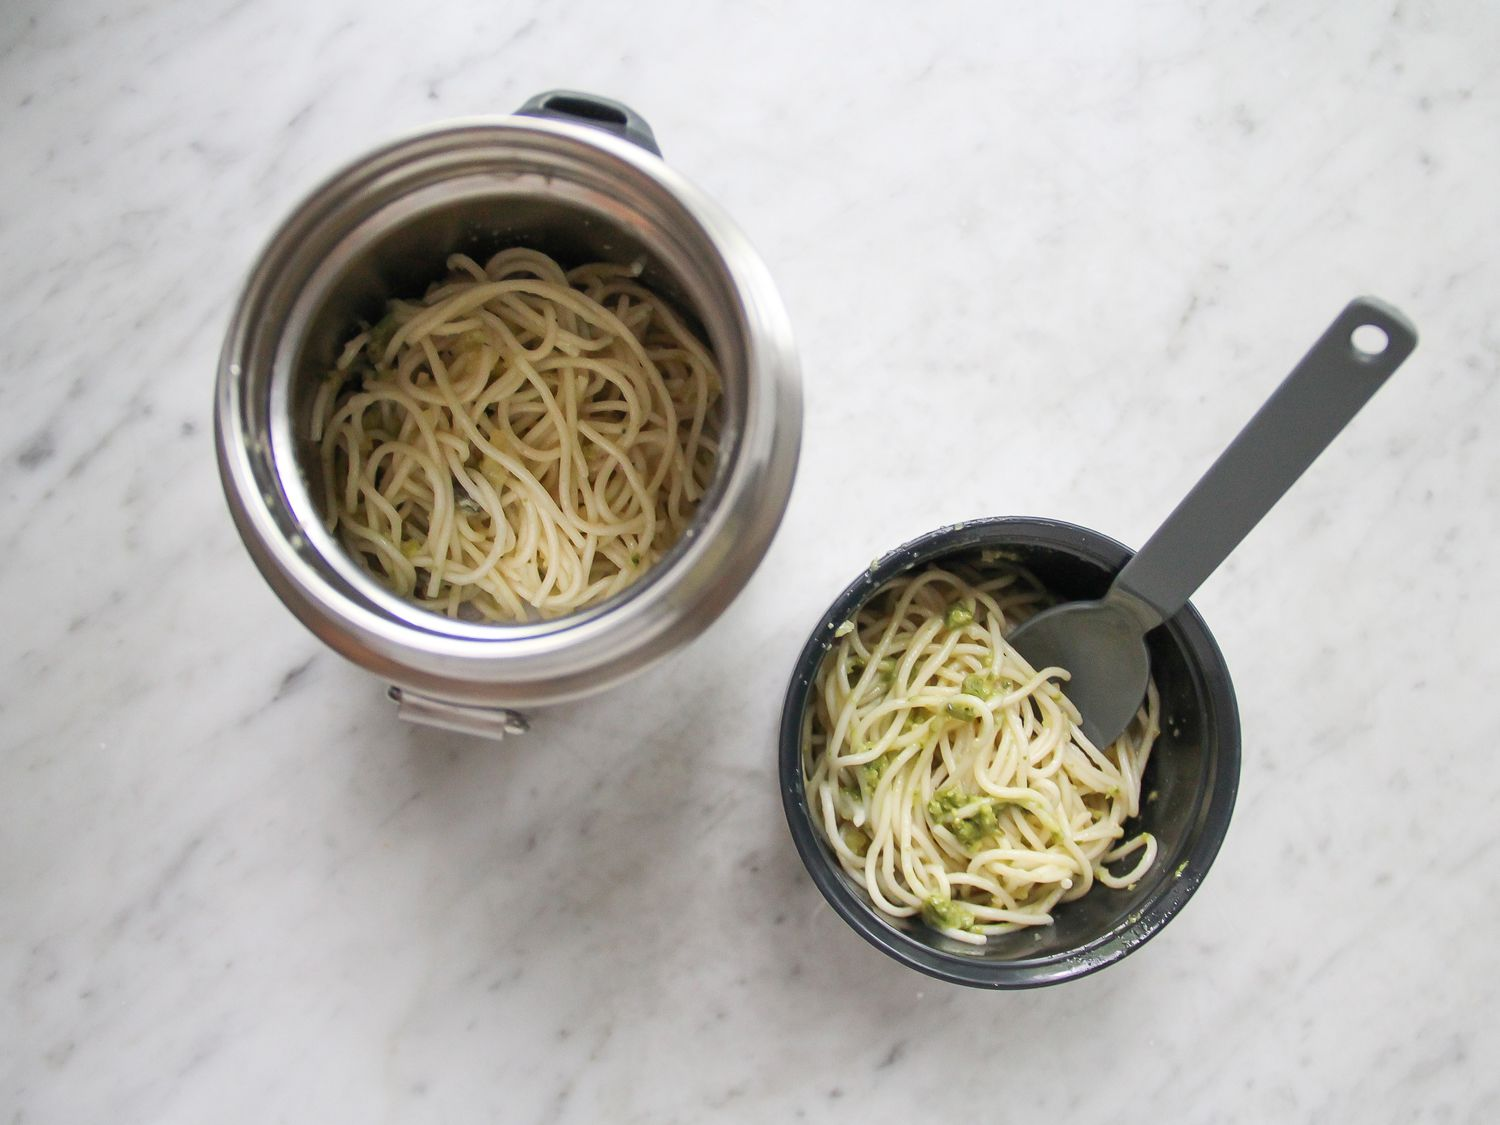 Food thermos with pasta and spork